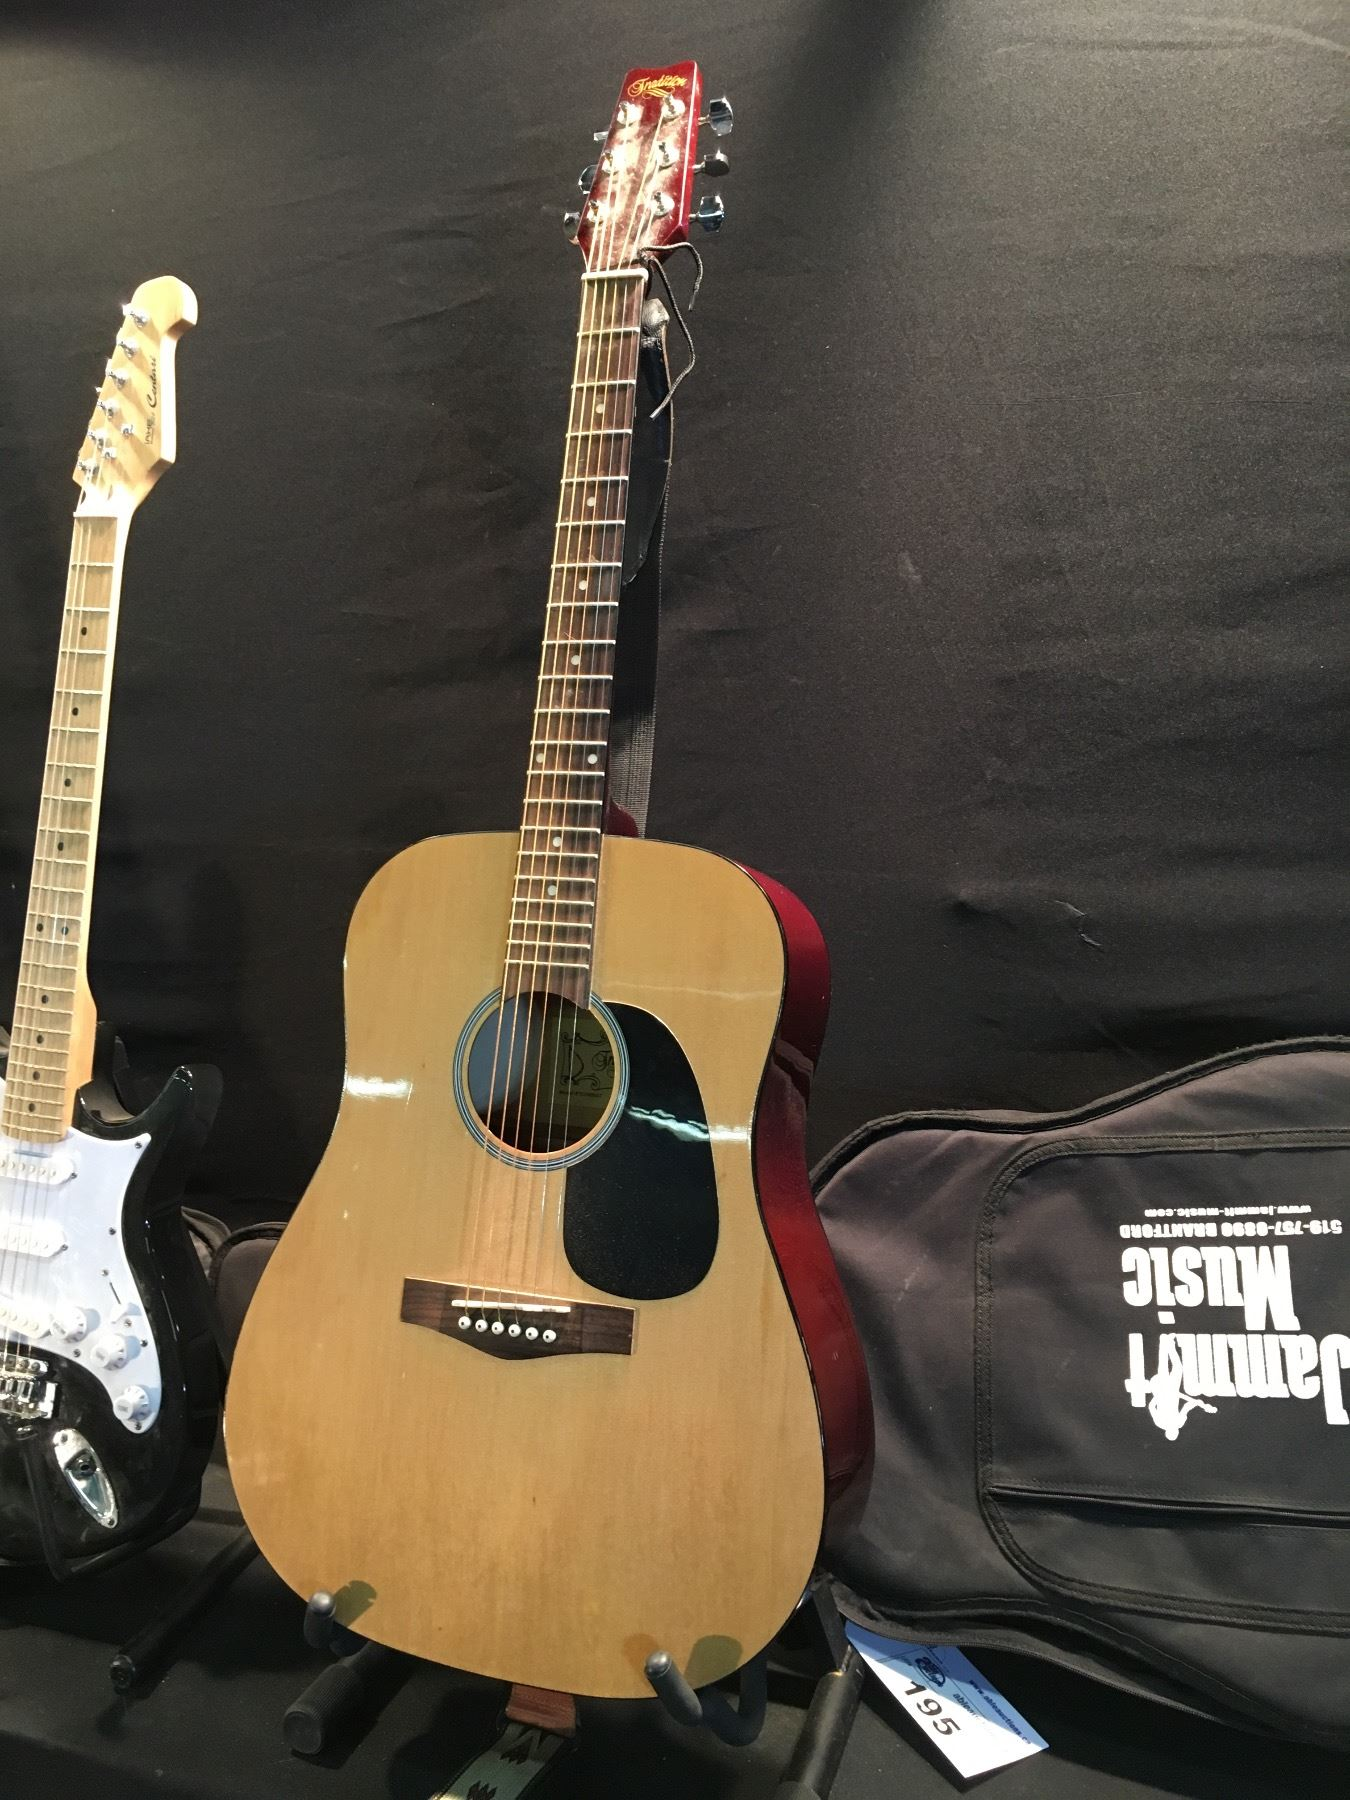 3f24f06732f ... Image 2 : 3 GUITARS: TRADITION ACOUSTIC GUITAR WITH SOFT SHELL CASE,  BEHRINGER CENTARI ...